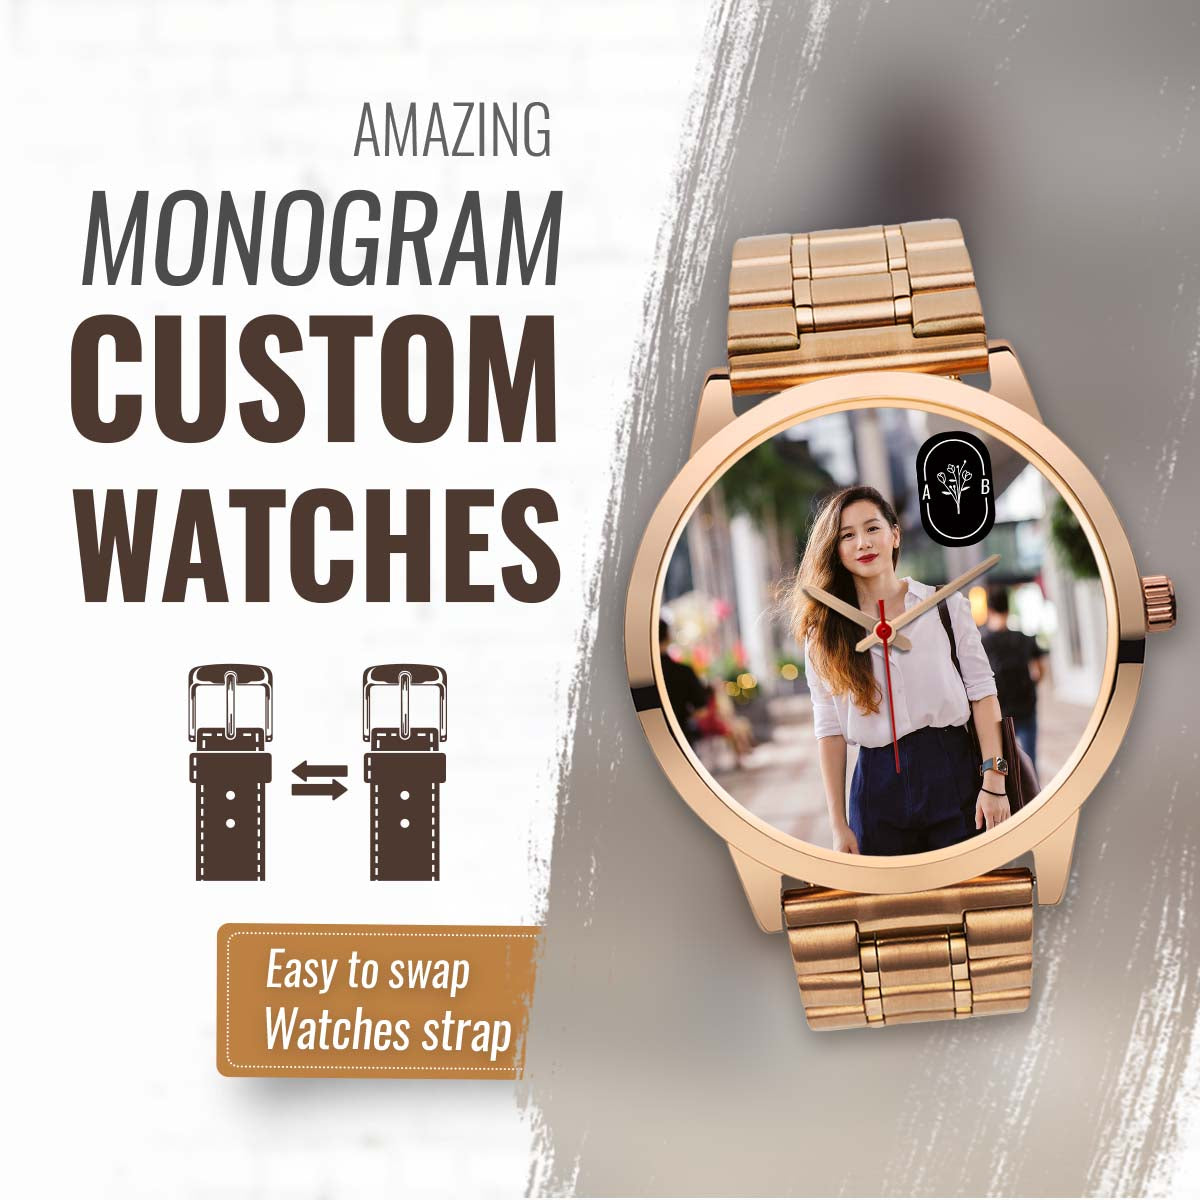 PERSONALIZED watch - MONOGRAM CUSTOM WATCHES